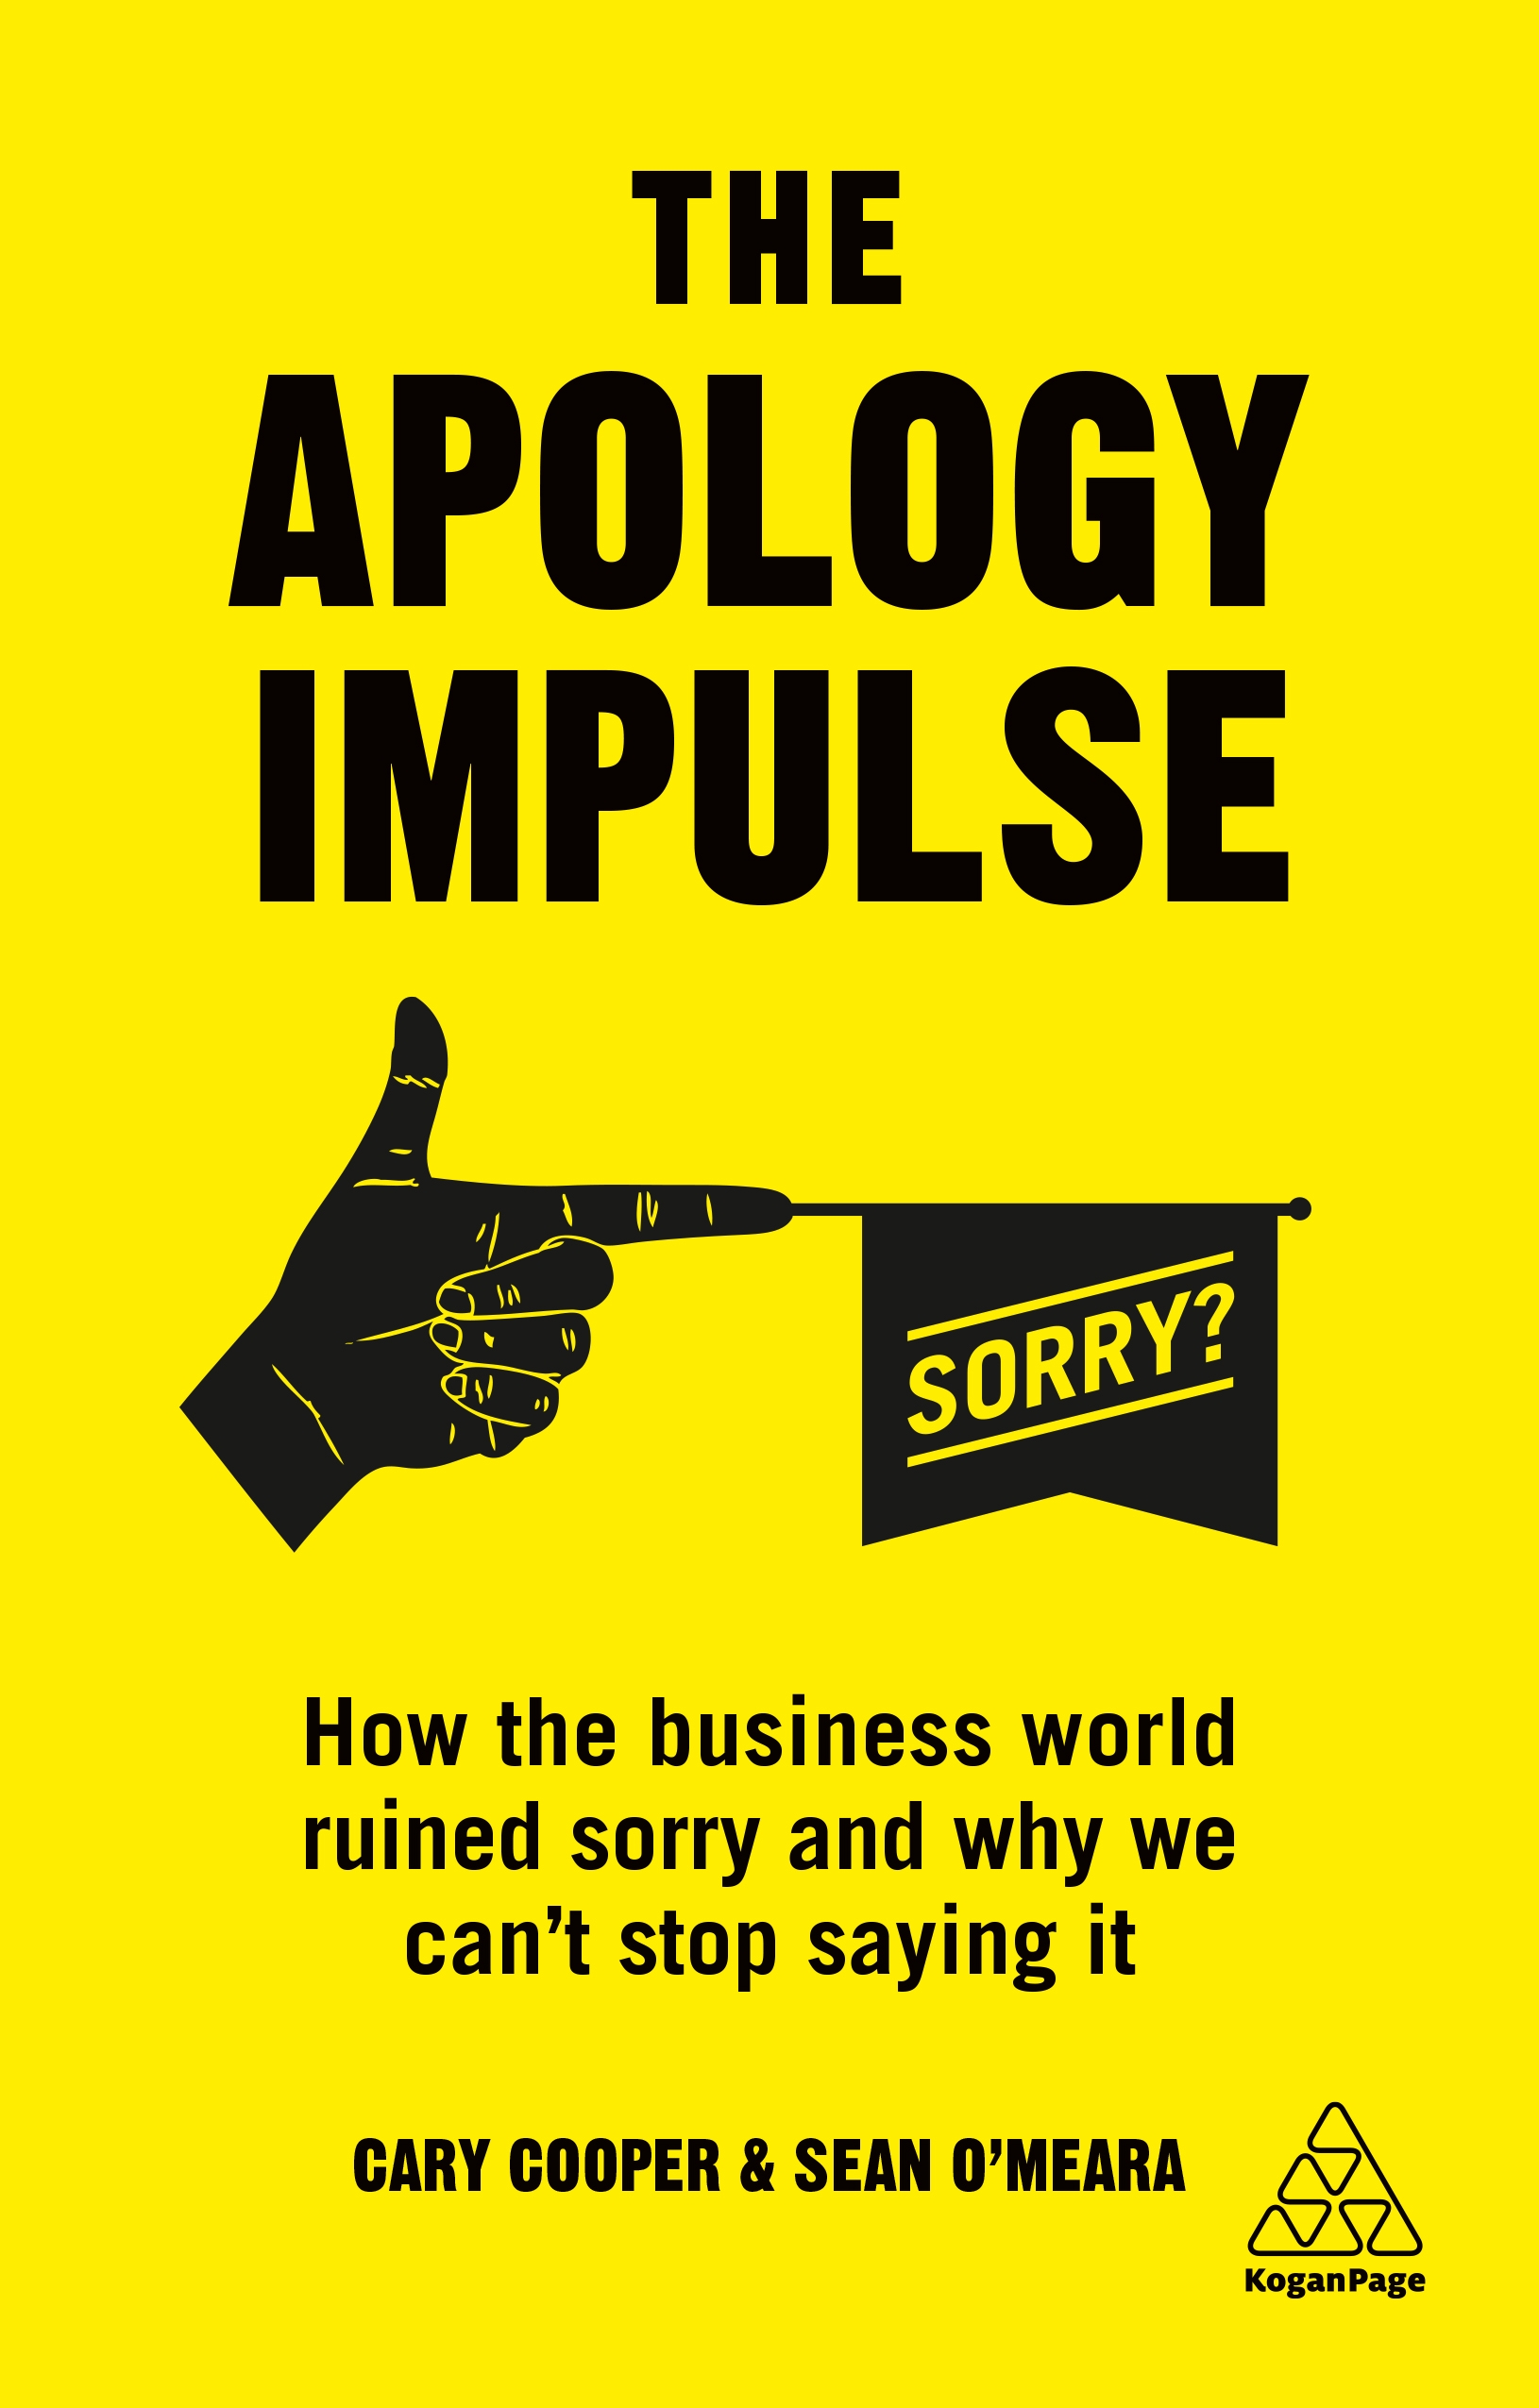 The Apology Impulse